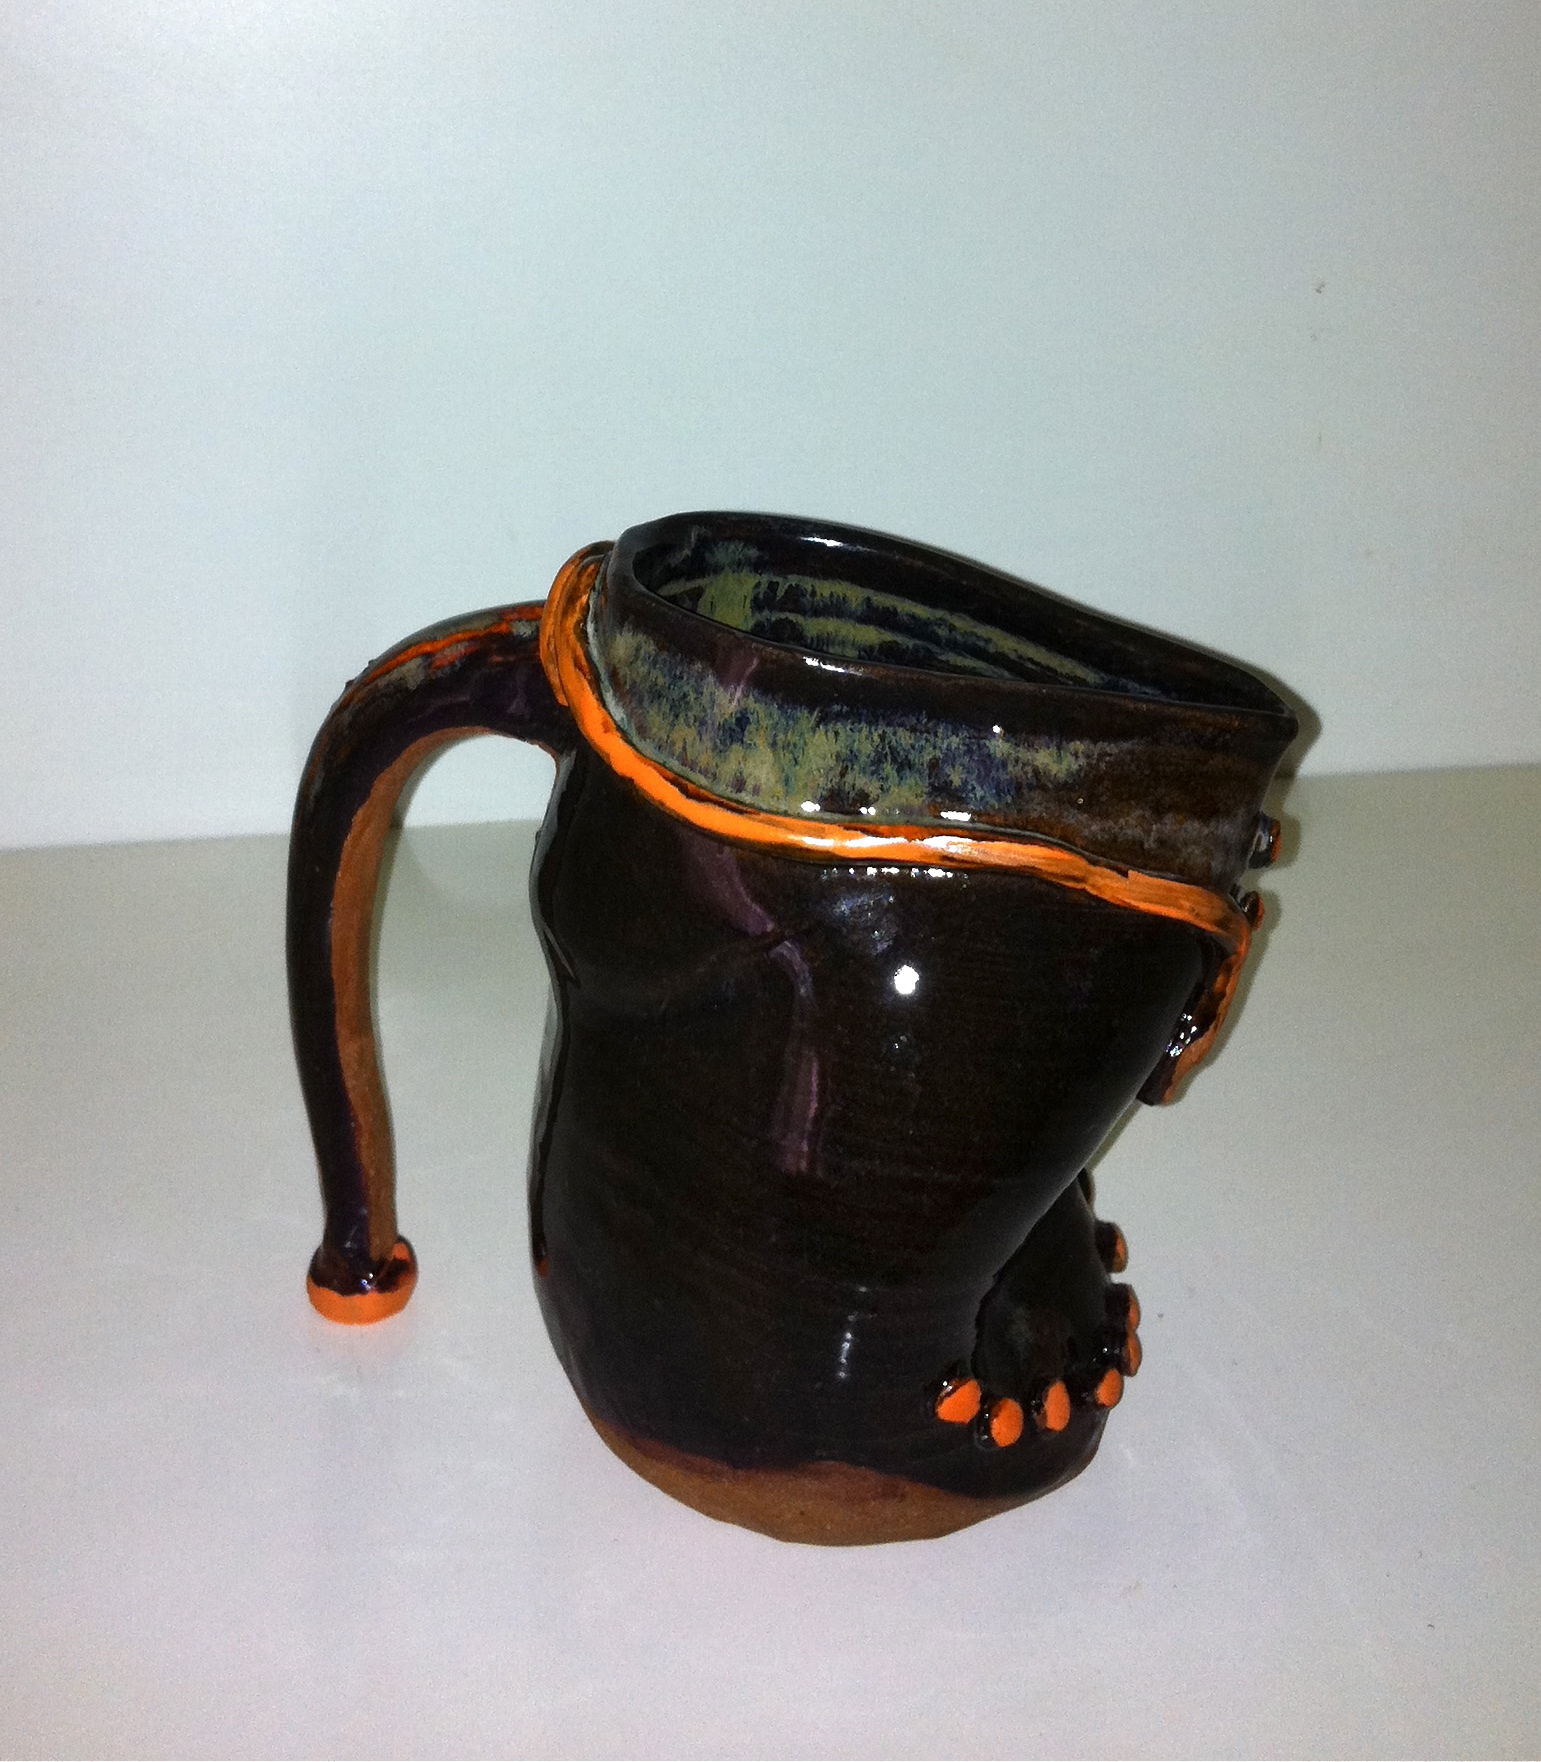 Shoe pitcher, side